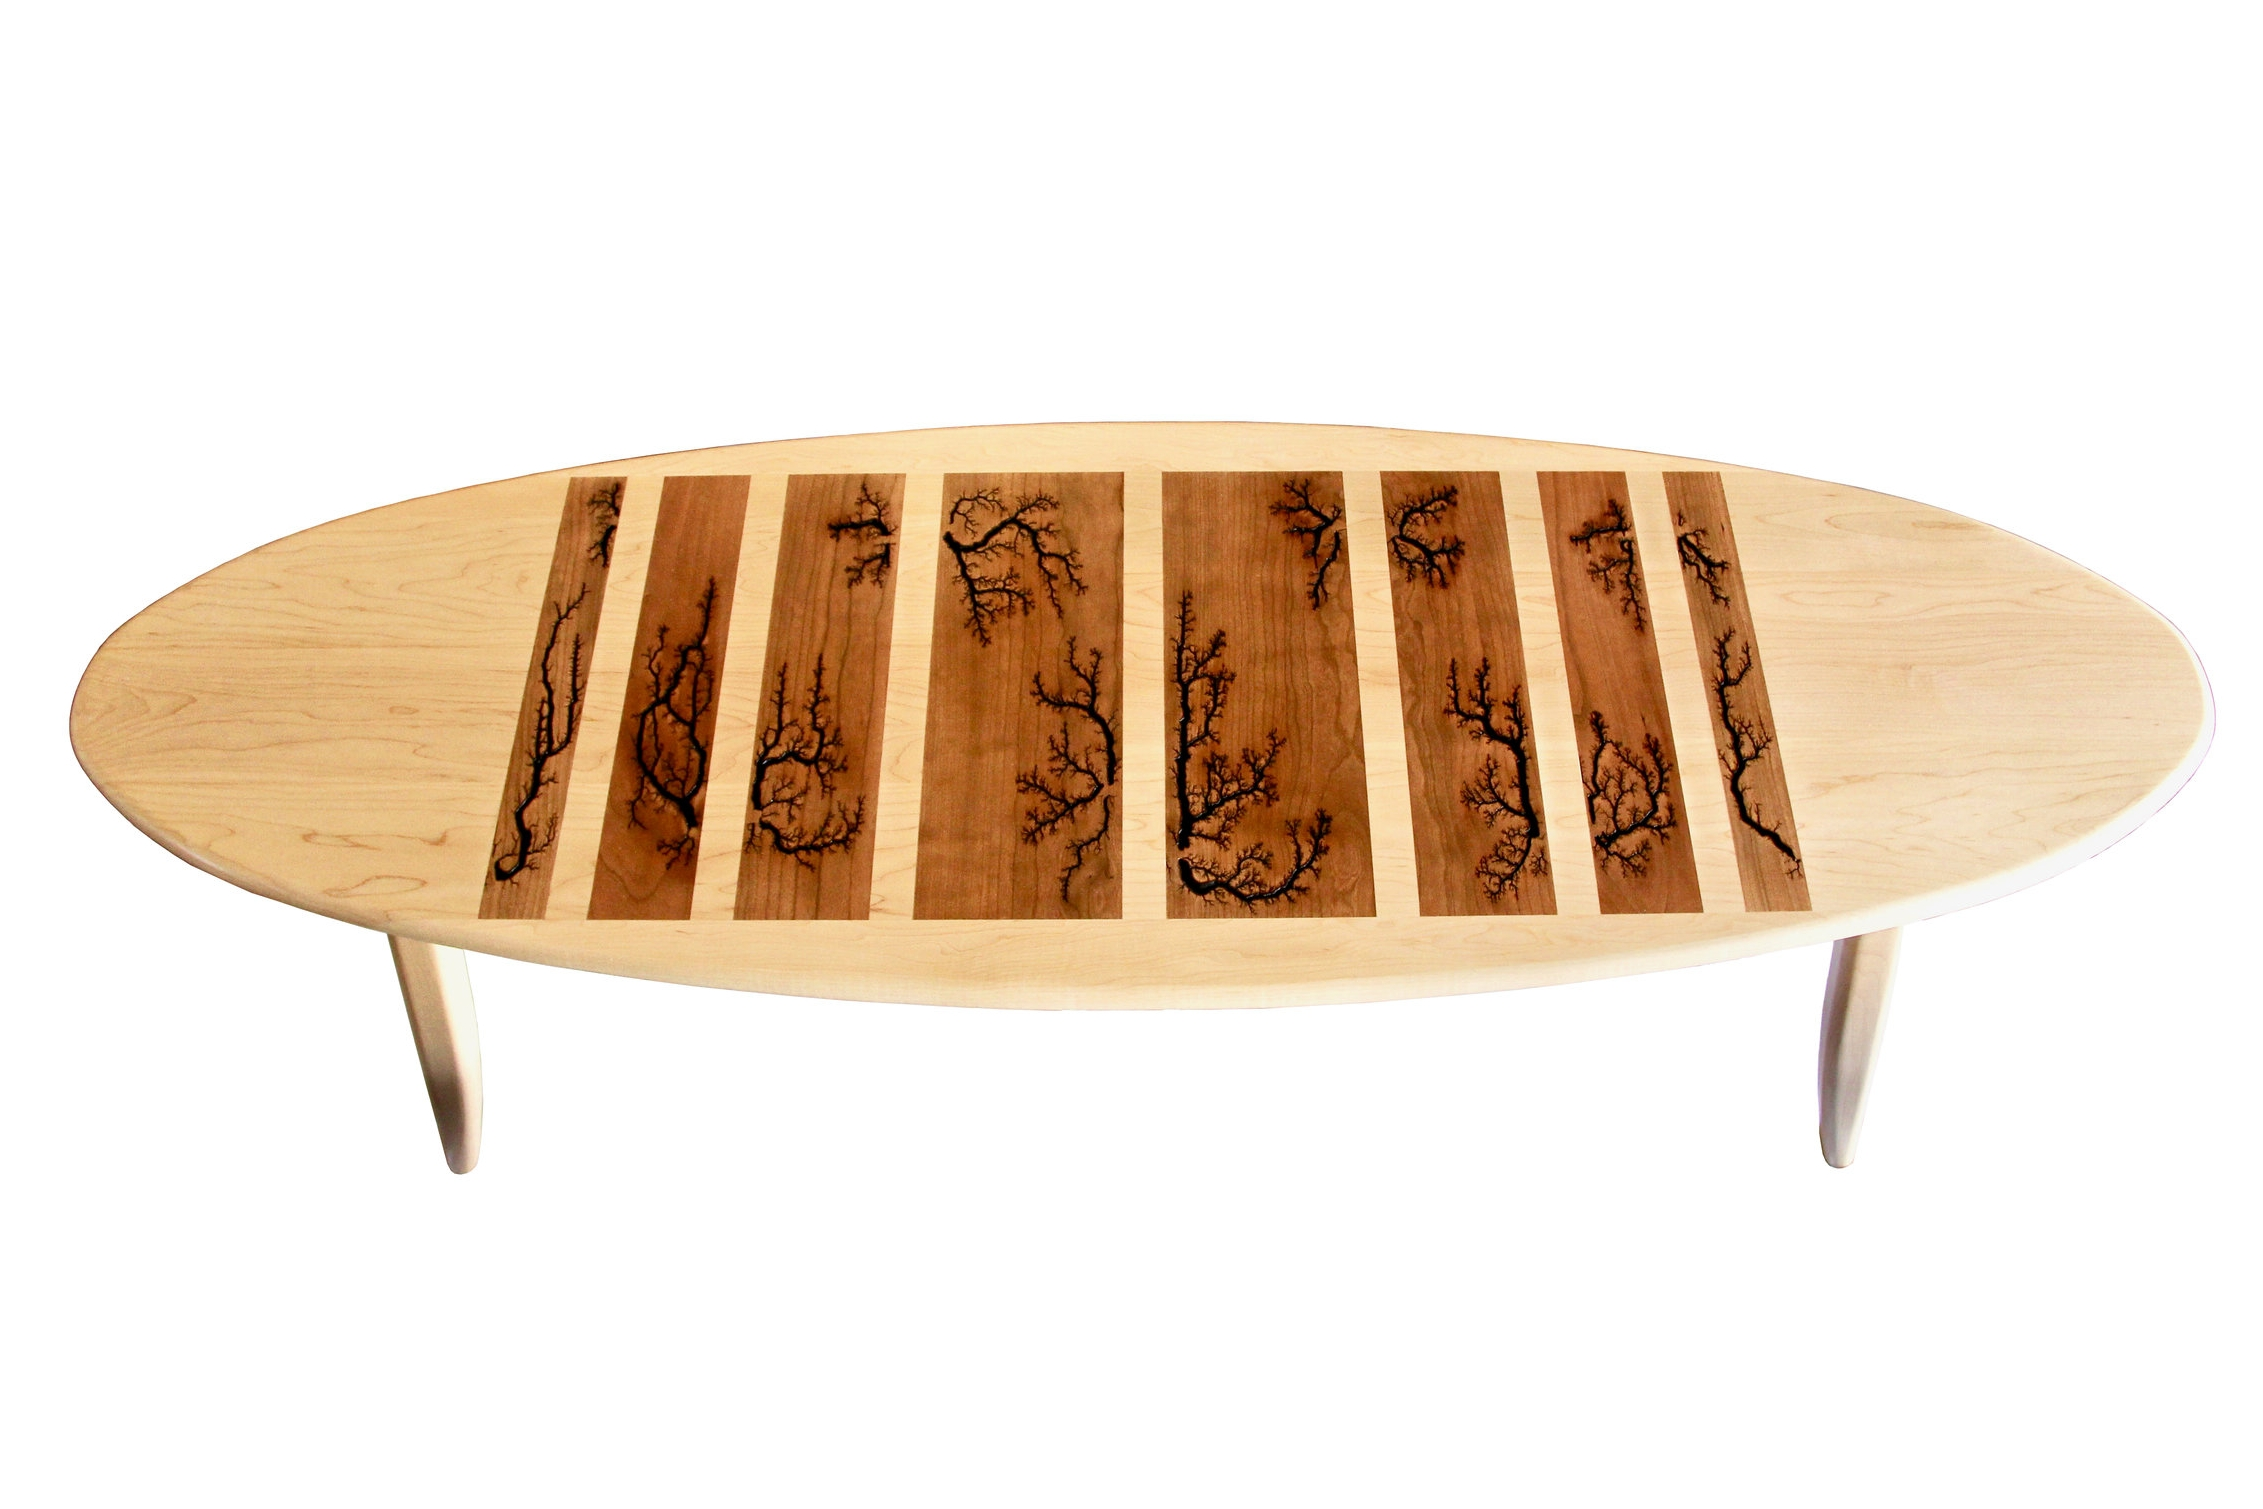 thunderbolt table - with Lichtenberg Figures (available for purchase in our online shop or at our workshop)